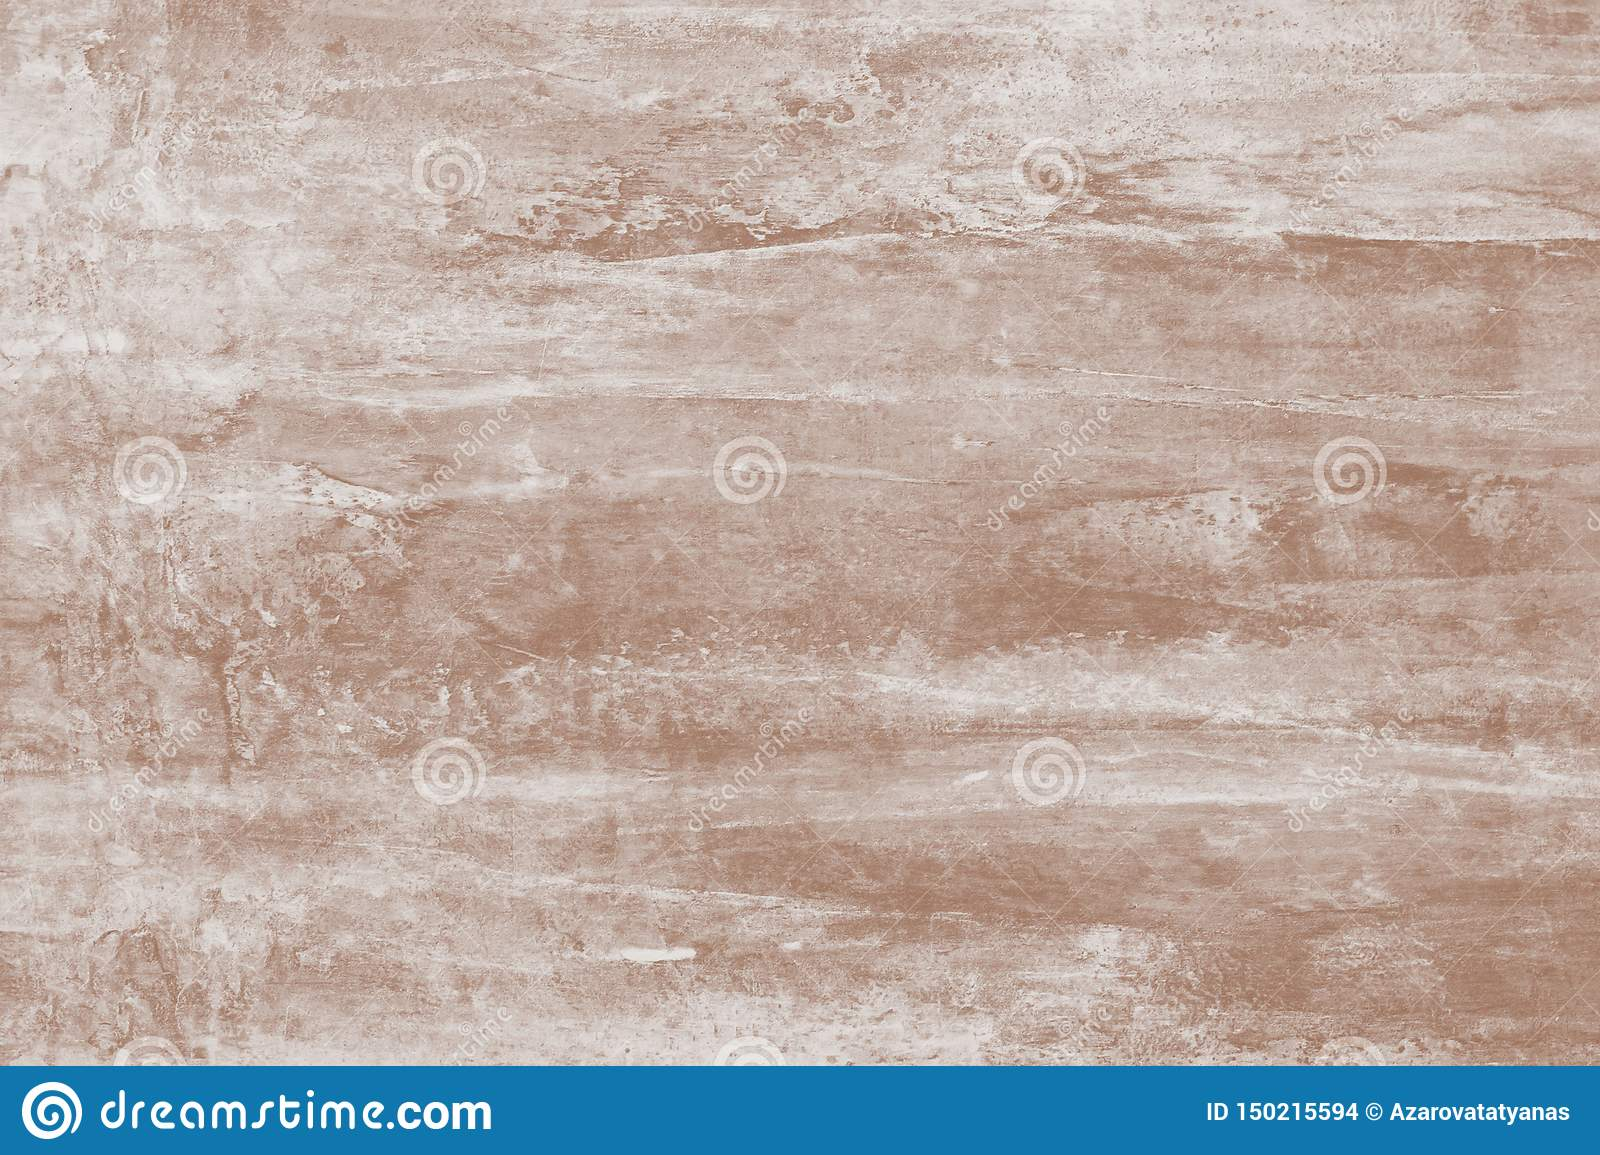 Painting, drawing. Abstract paint pattern of light brown with stains. Soft brown background of canvas. Illustration with blots on